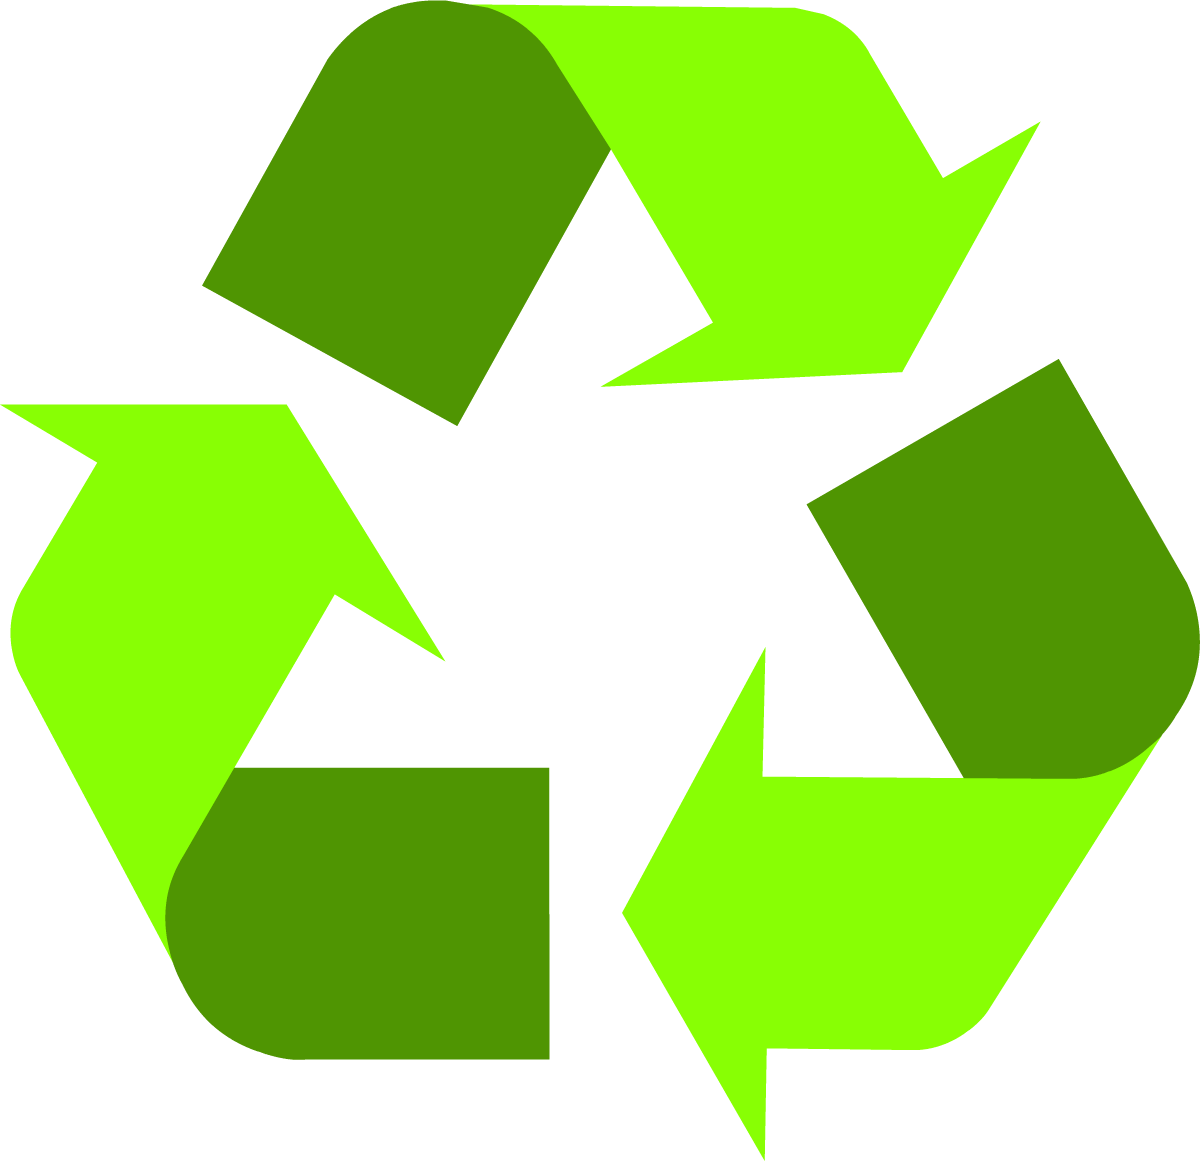 Environment clipart upcycling. Recycling iynf medium the